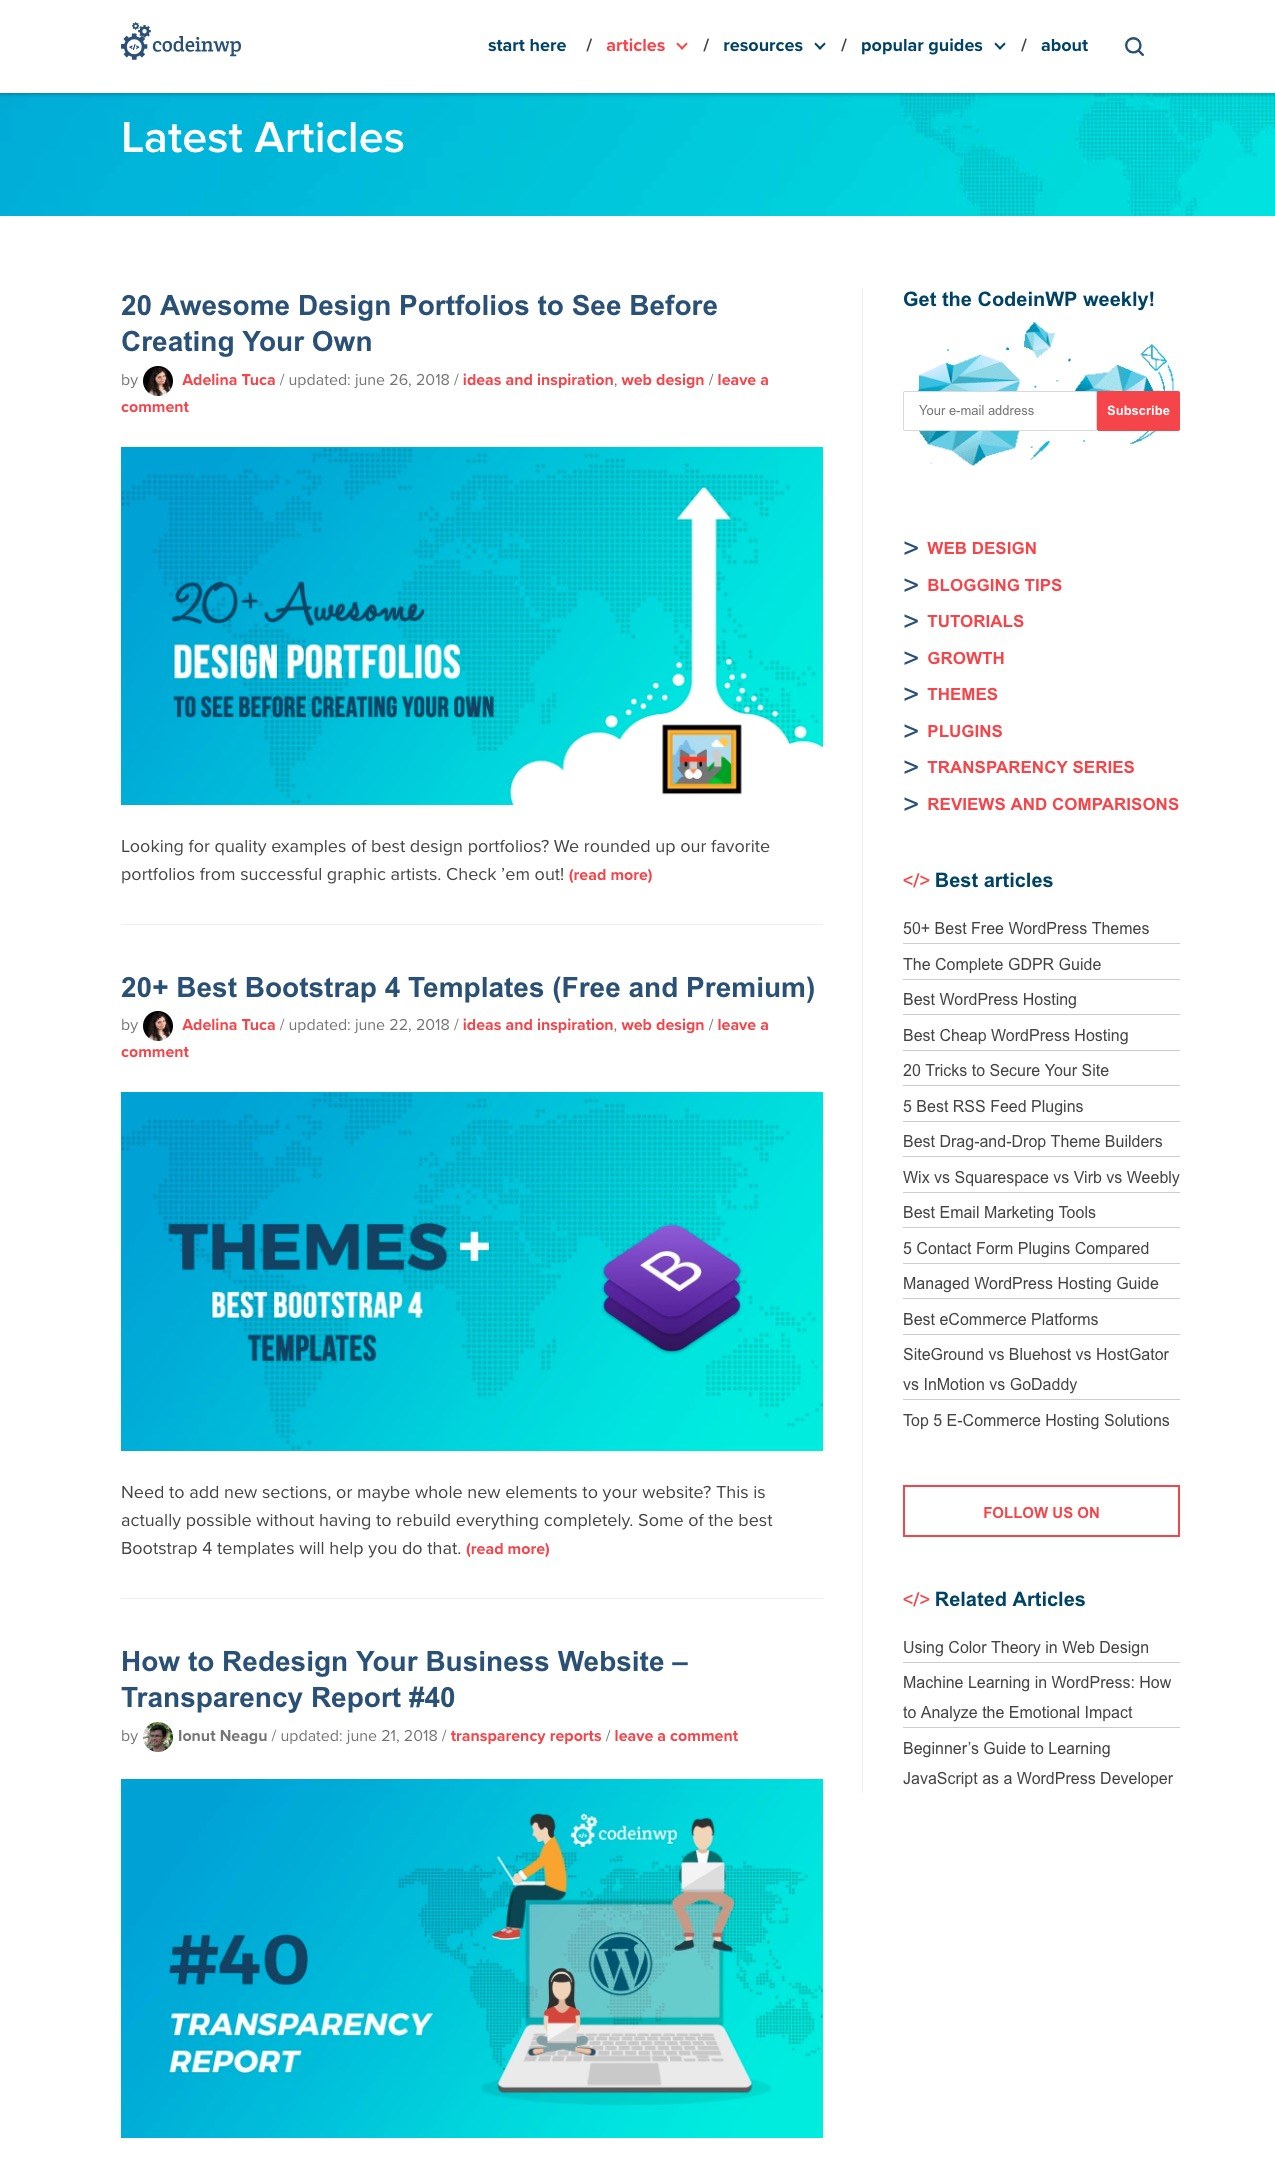 Homepage - the no.1 of your blog pages